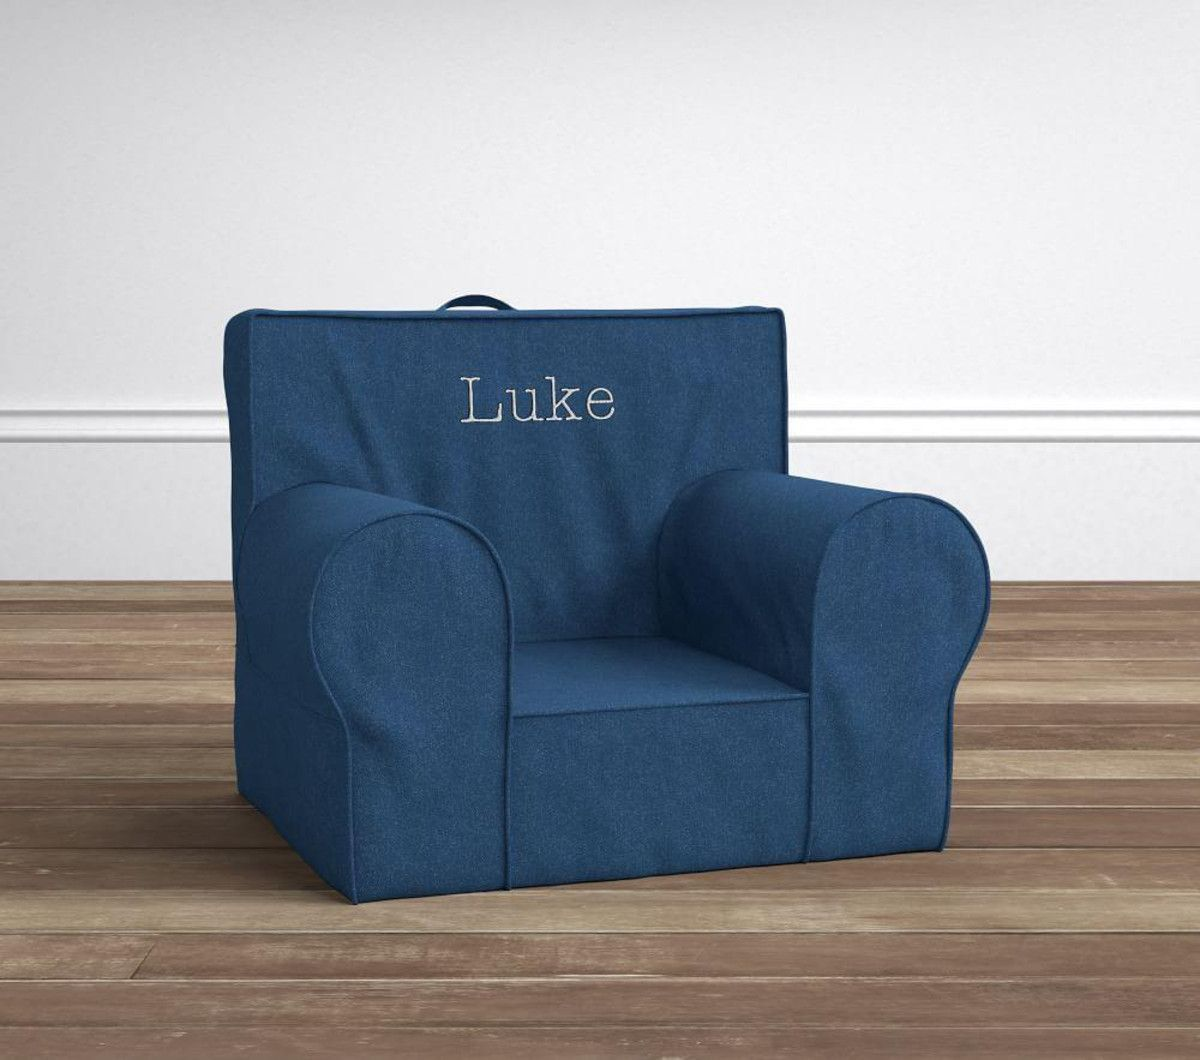 Denim Anywhere Chair Slipcovers for chairs, Kids lounge